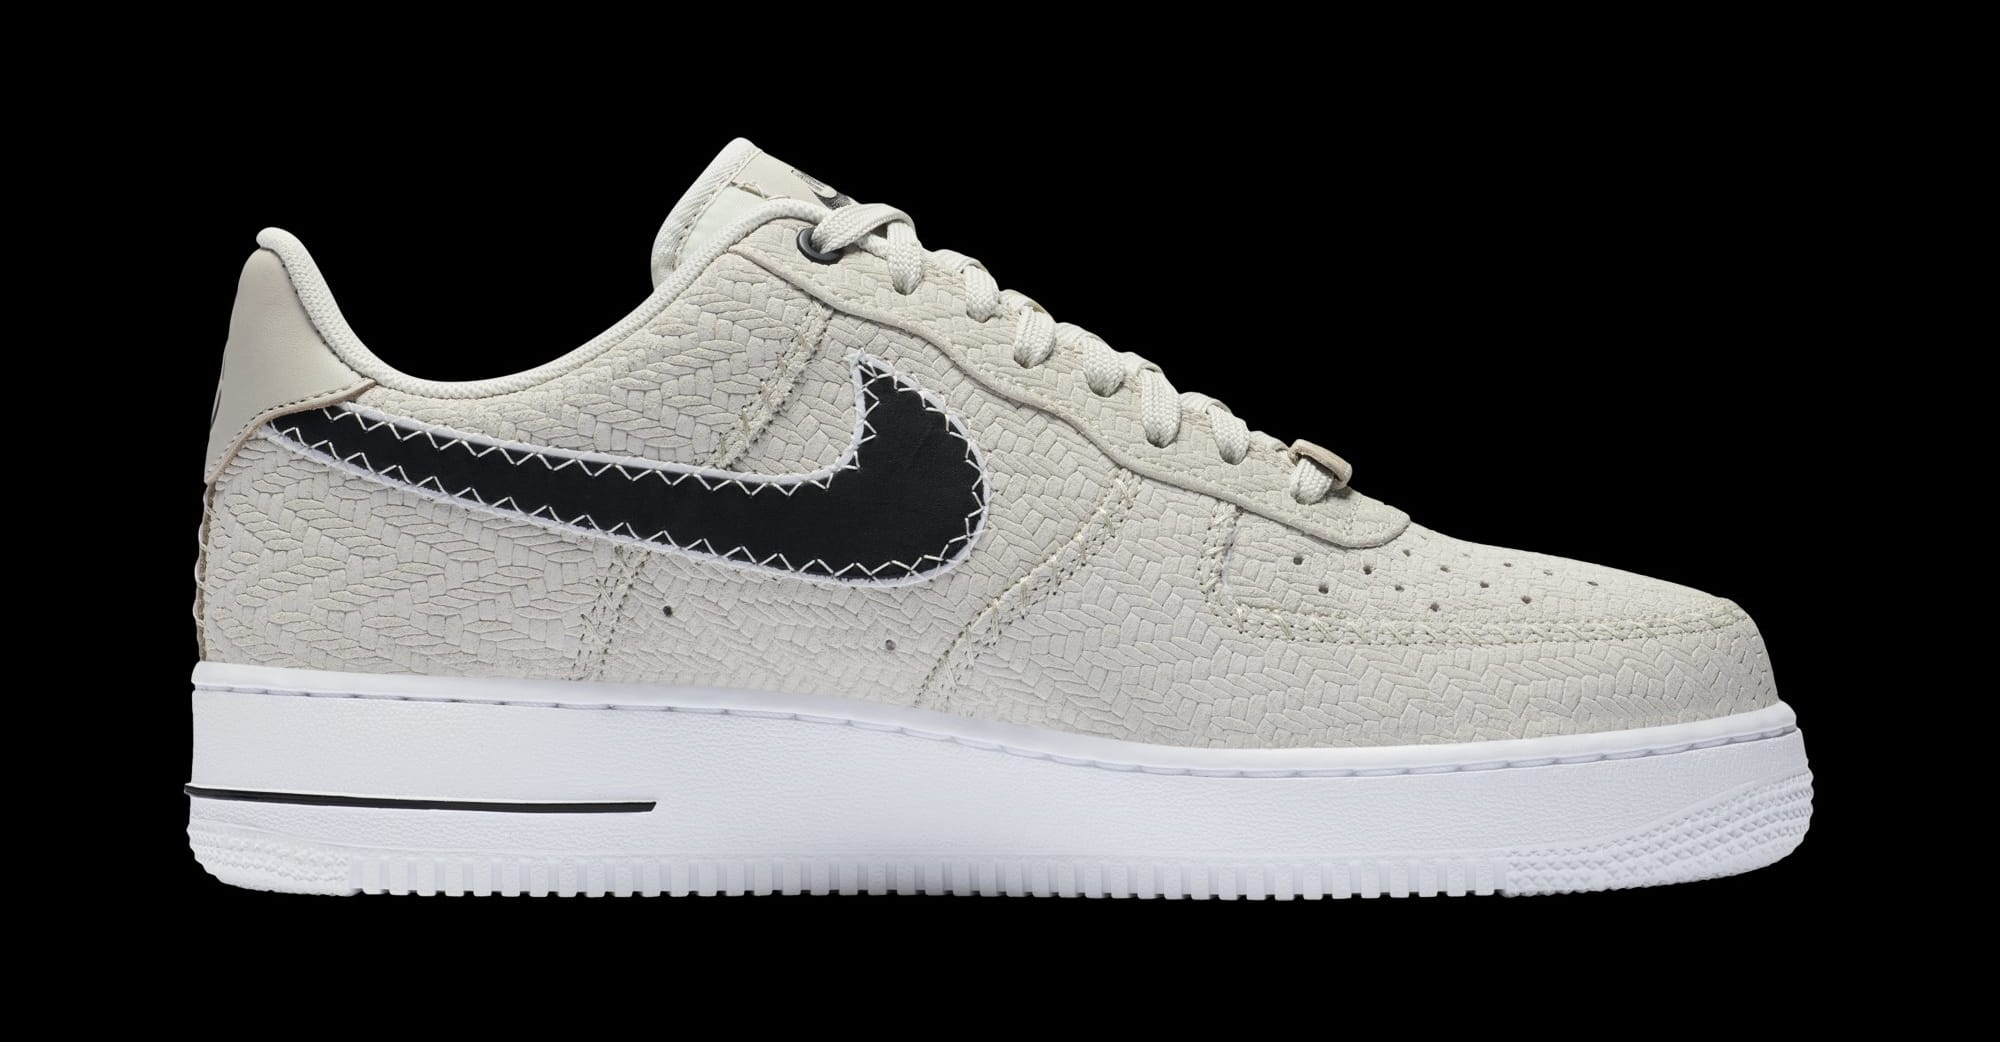 Nike Air Force 1 Low 'N7' AO2369-001 (Medial)